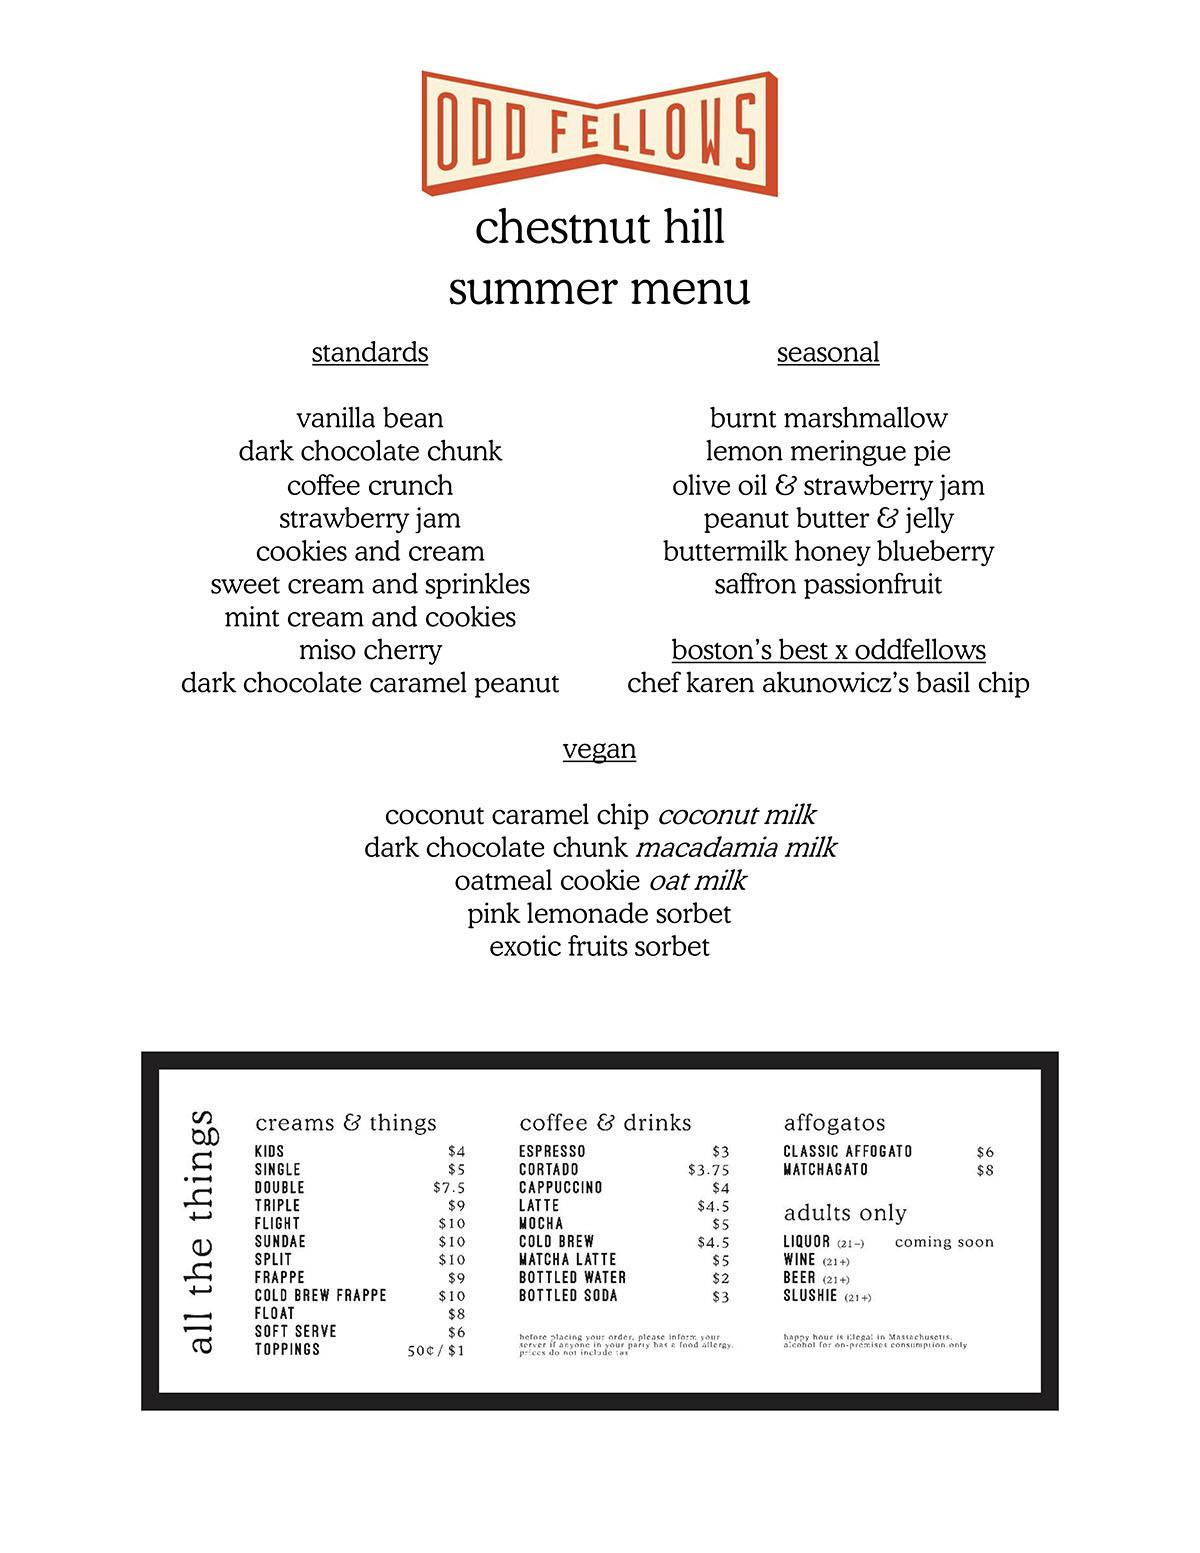 OddFellows Ice Cream menu Boston